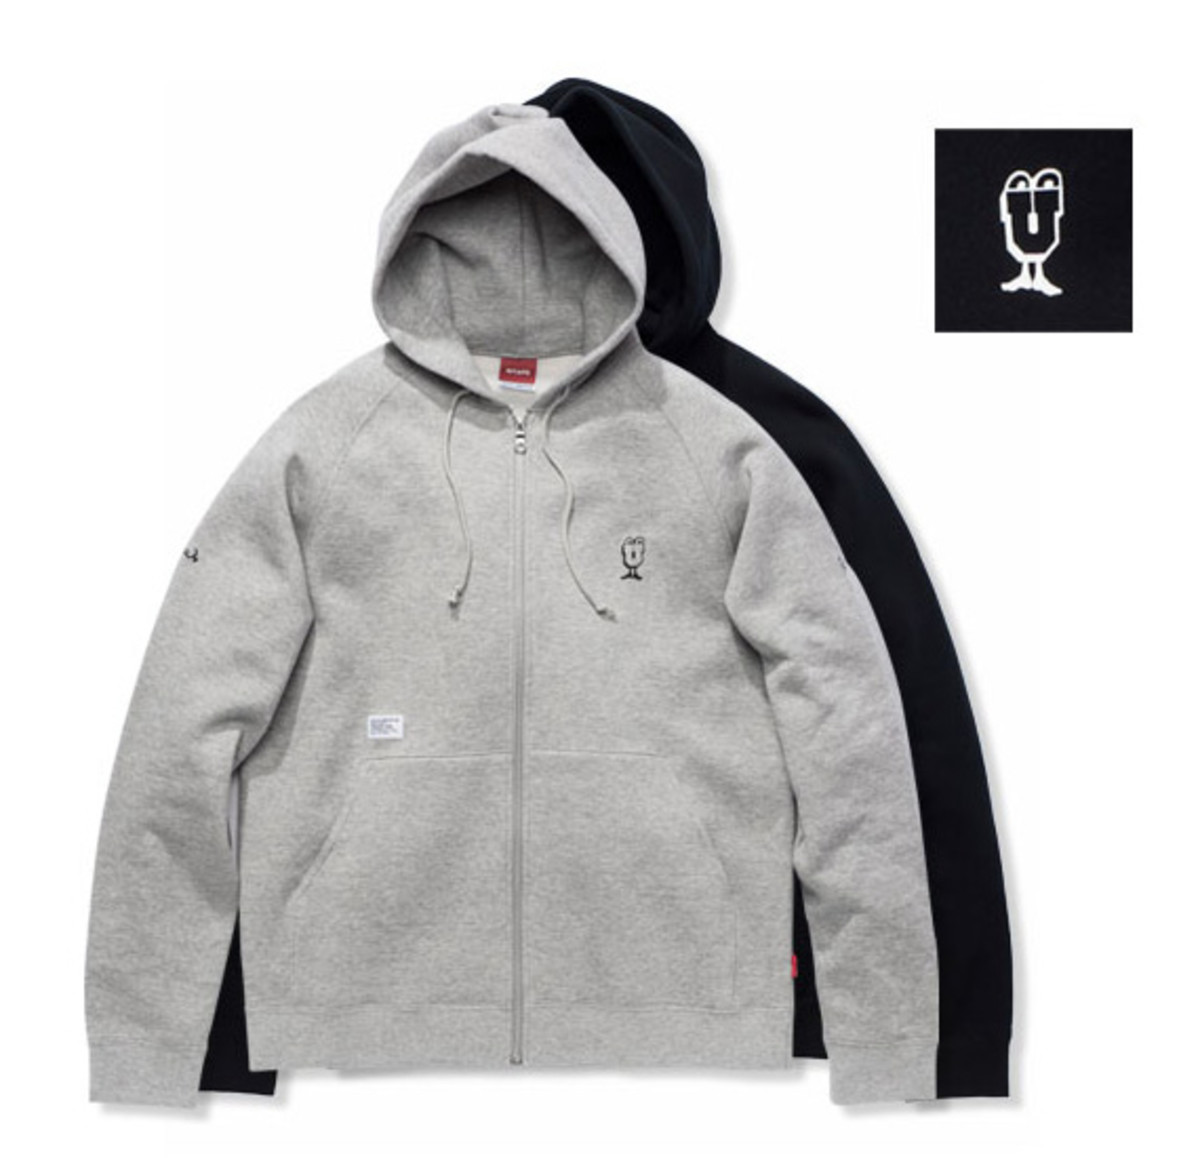 undefeated-wtaps-fall-winter-2012-capsule-collection-02